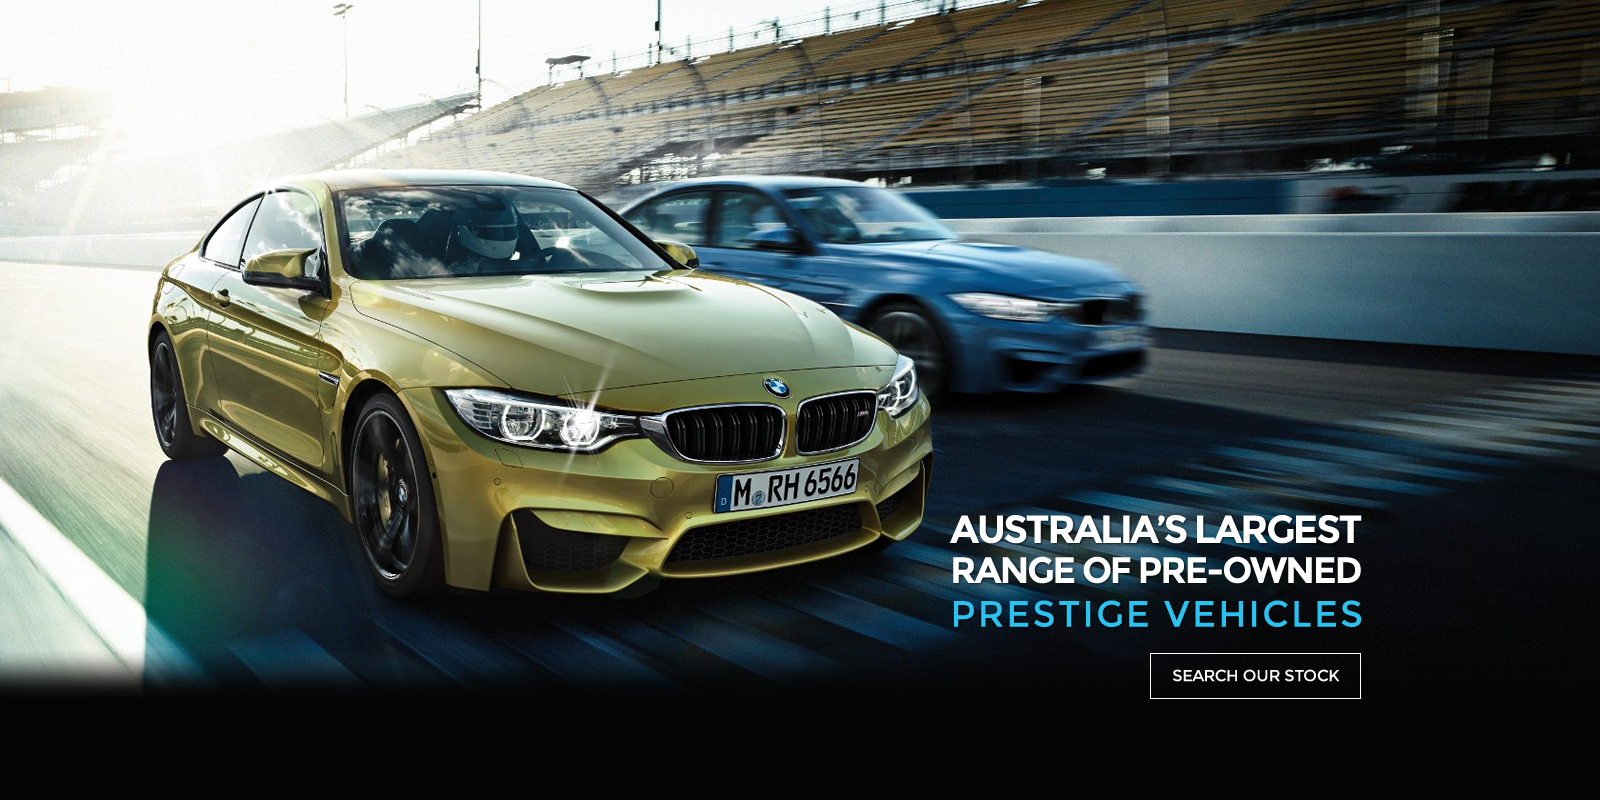 Used Dealer Sydney Prestige Auto Traders - Audi car loan interest rate